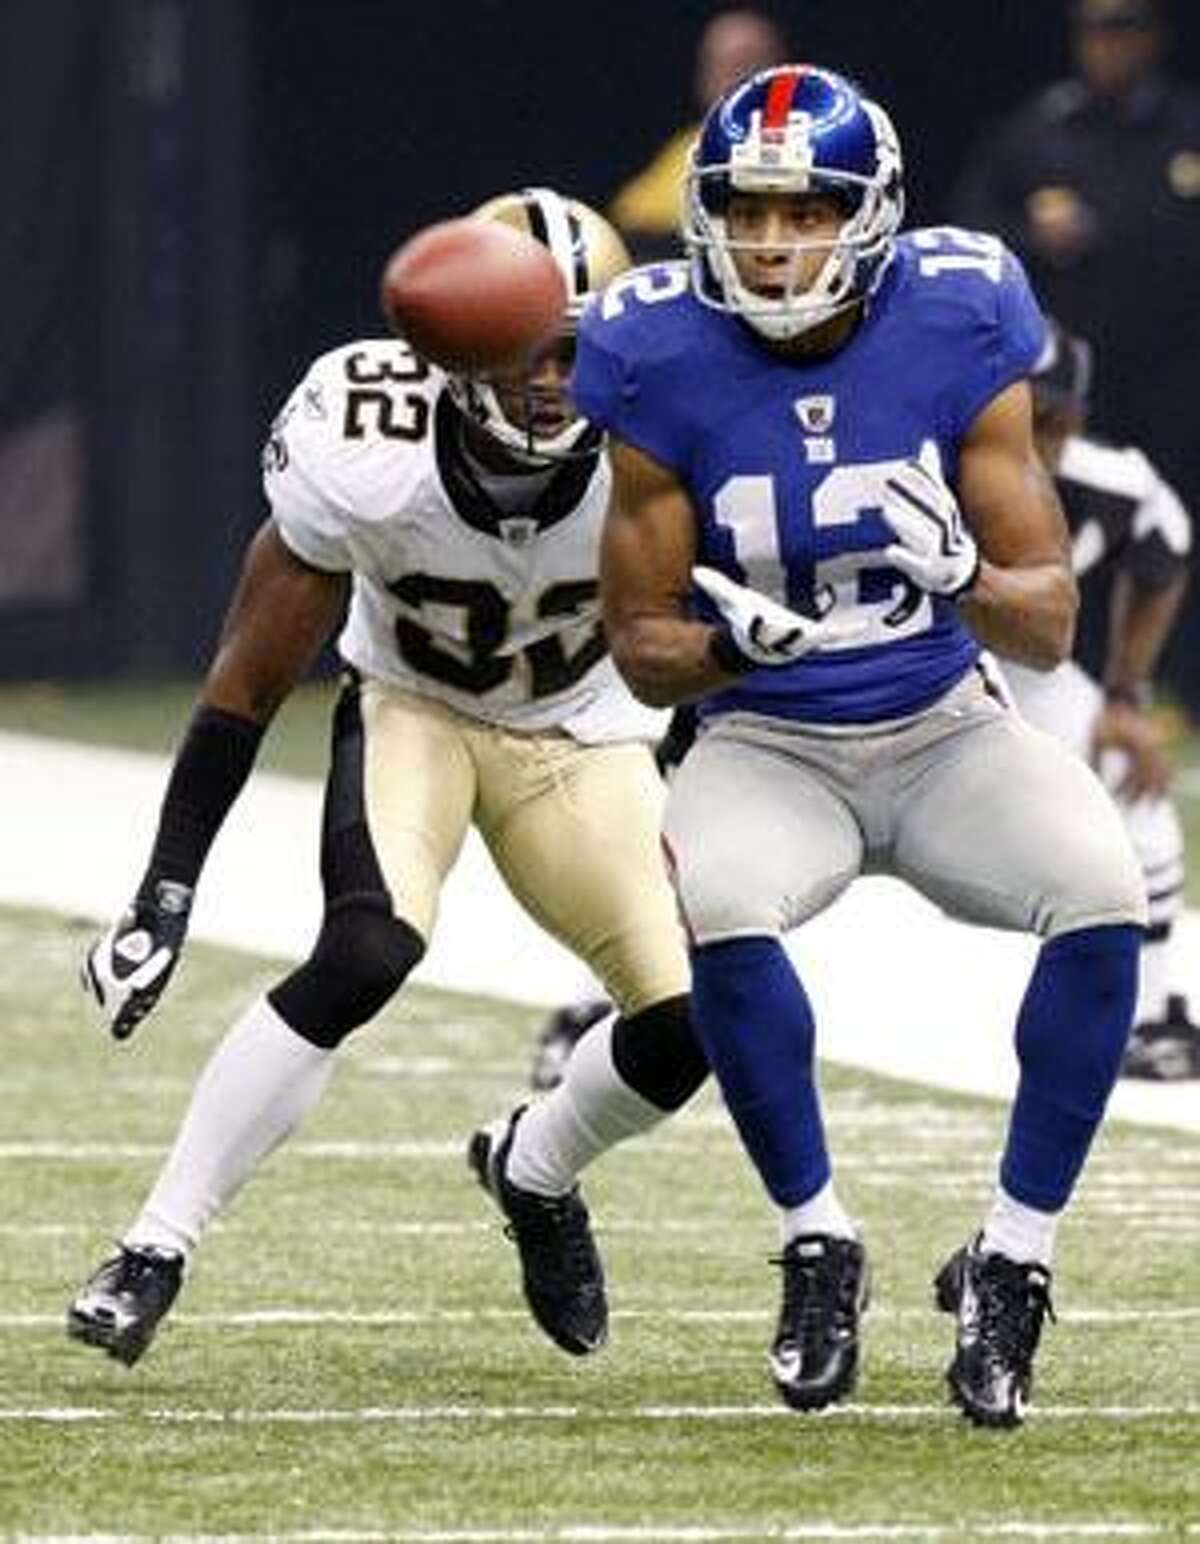 In this Oct. 18 file photo, New York Giants wide receiver Steve Smith (12) catches a pass in front of New Orleans Saints cornerback Jabari Greer (32) in New Orleans. Carolina Panthers' Dwayne Jarrett has played with both Steve Smiths. He distinguishes between the two by calling the Panthers receiver